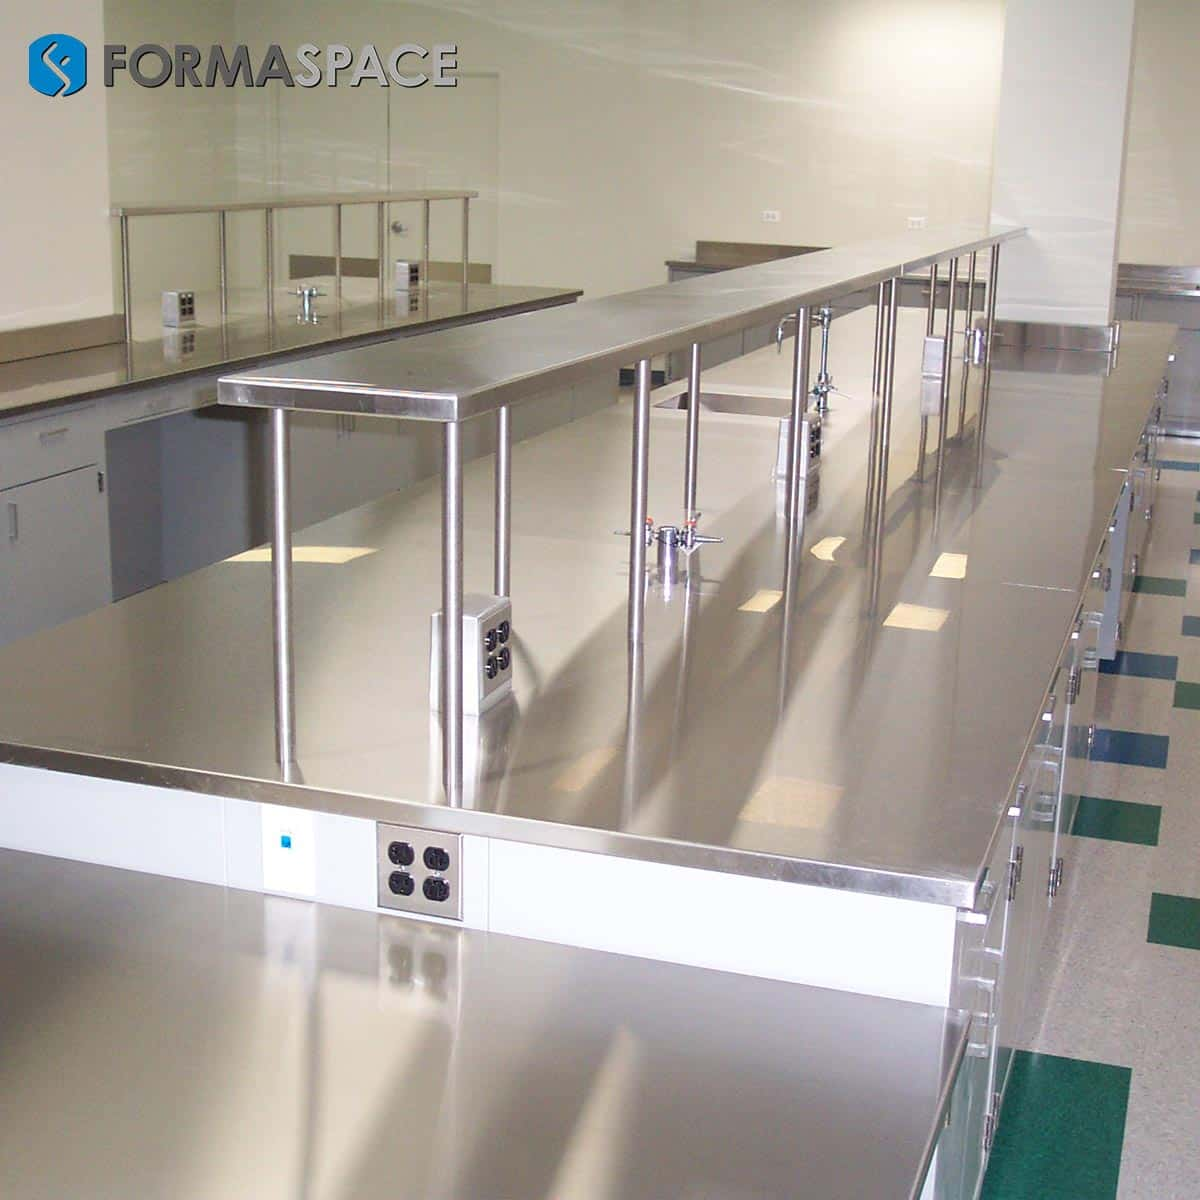 stainless steel countertop and reagent shelves